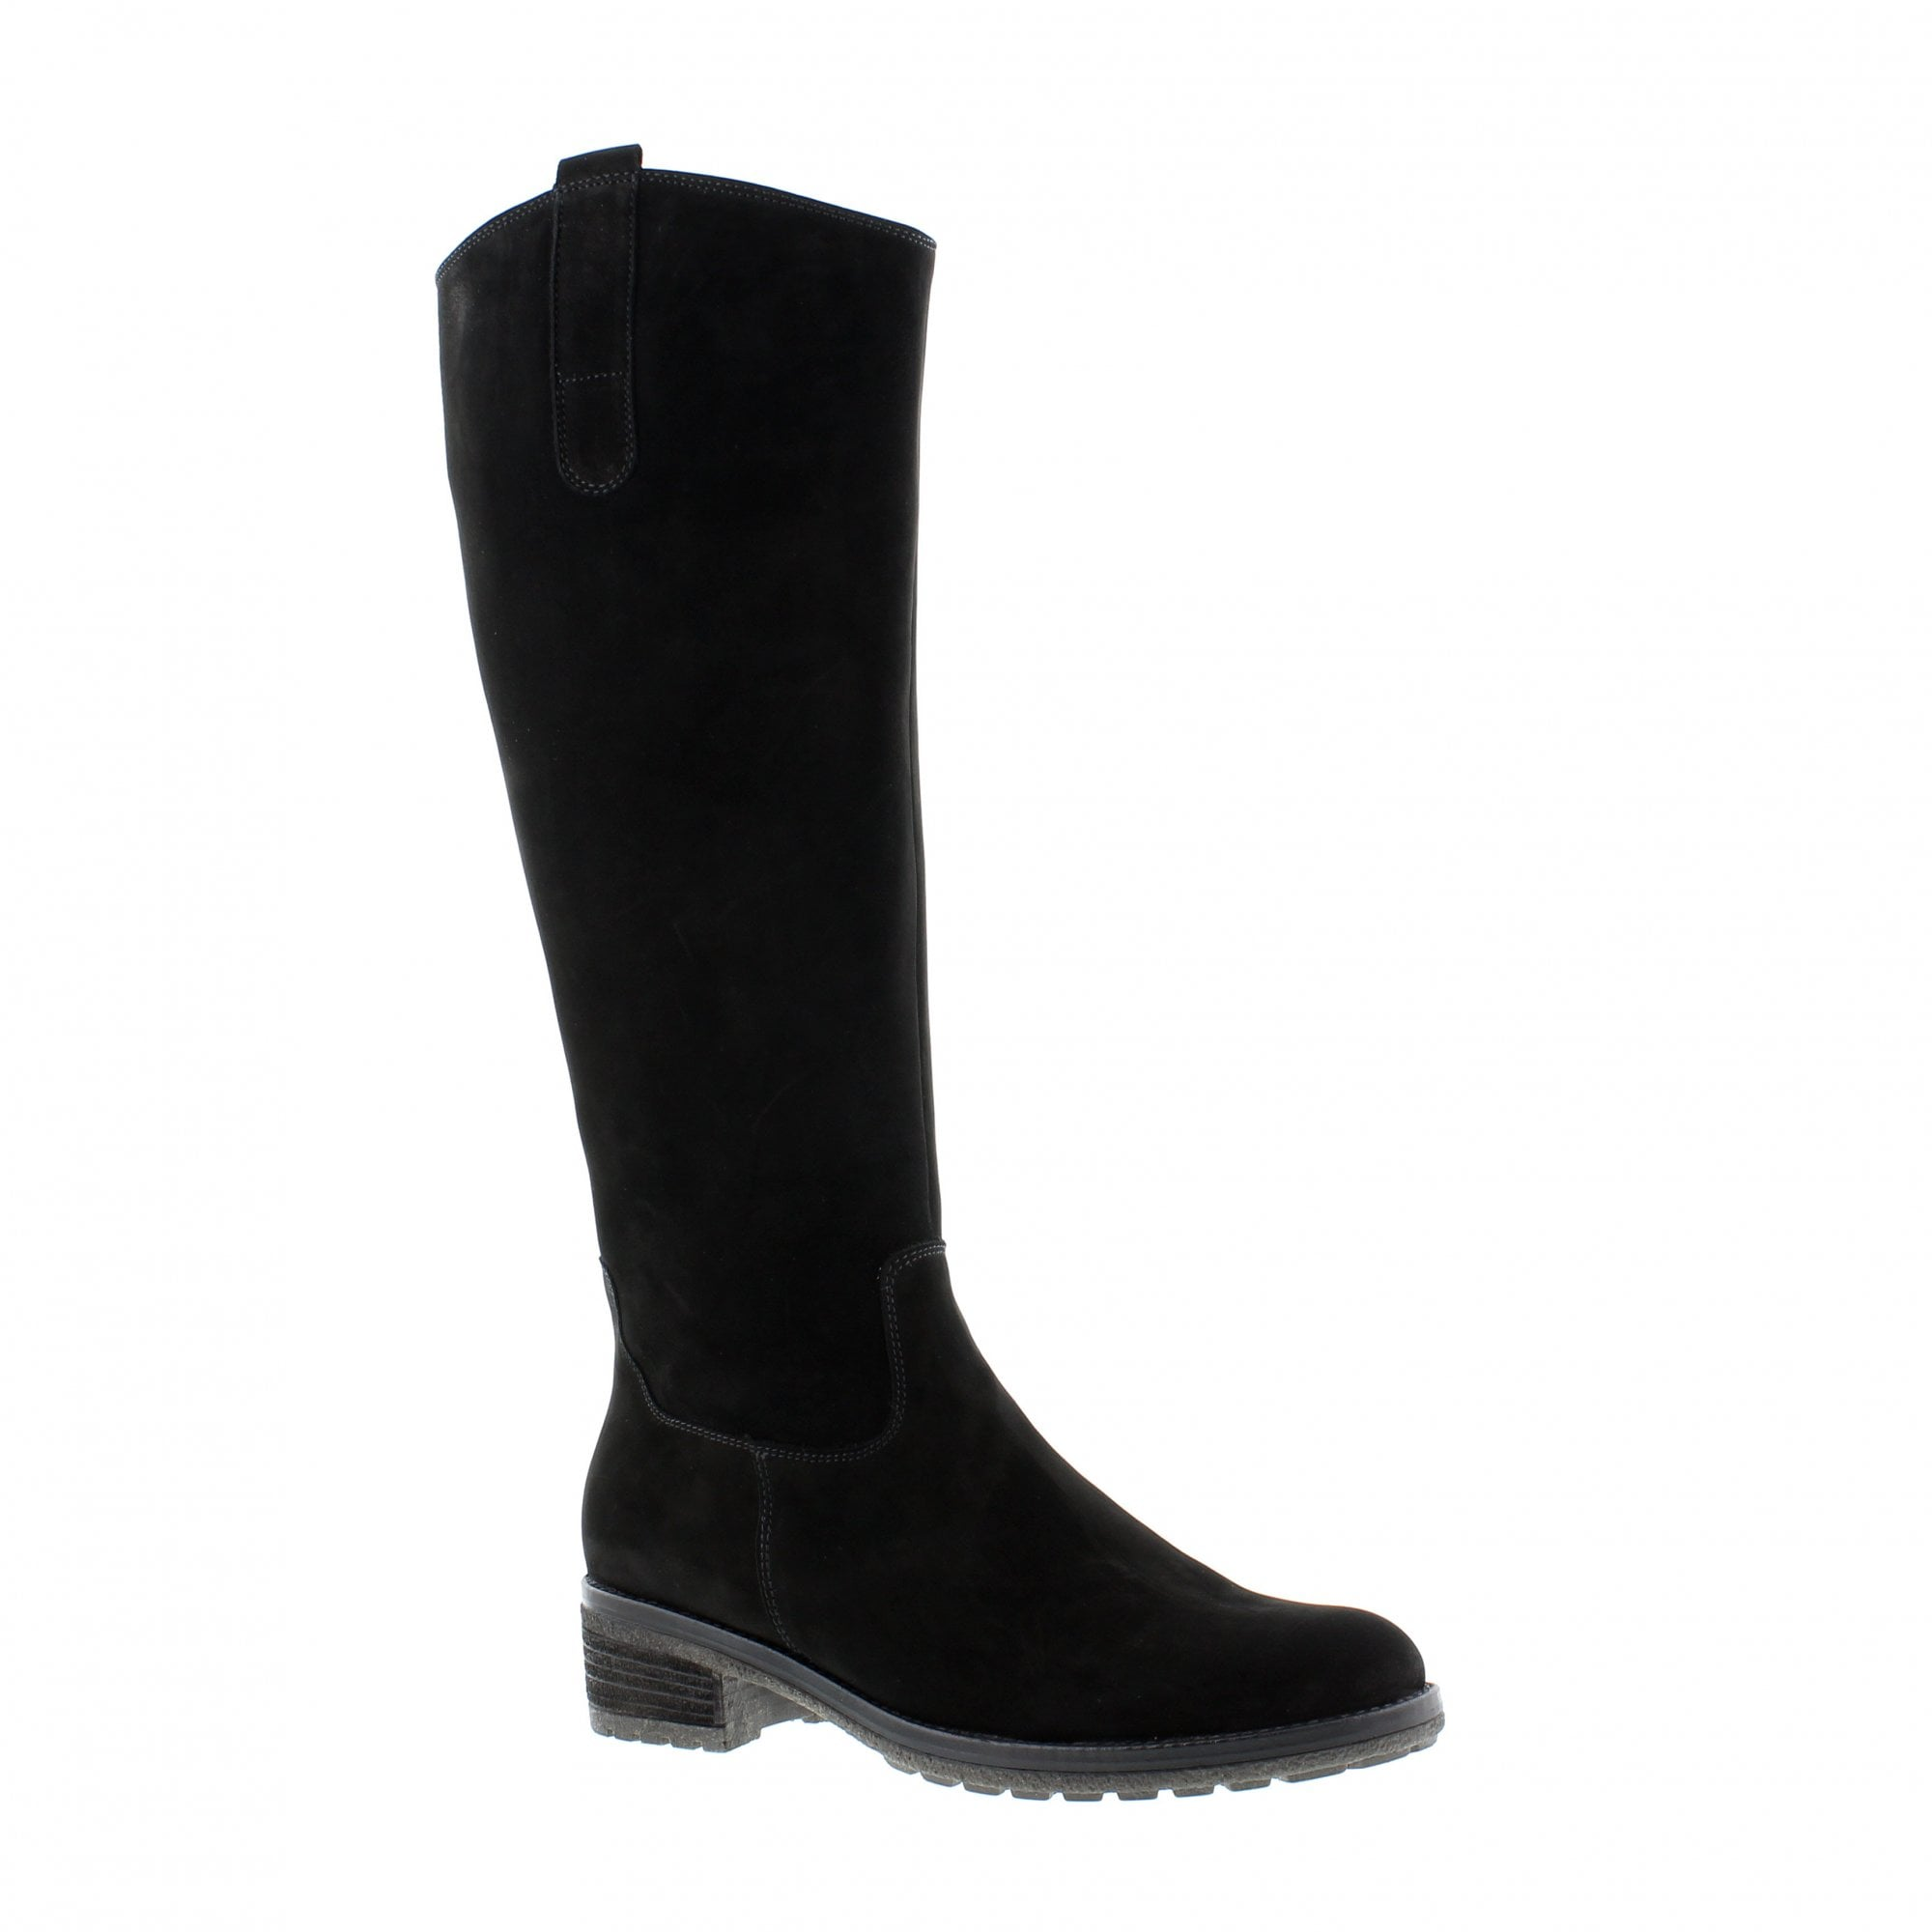 wholesale outlet reputable site best sneakers Gabor Shields L-Fit 91-616-17 Black Knee High Boots | Rogerson Shoes